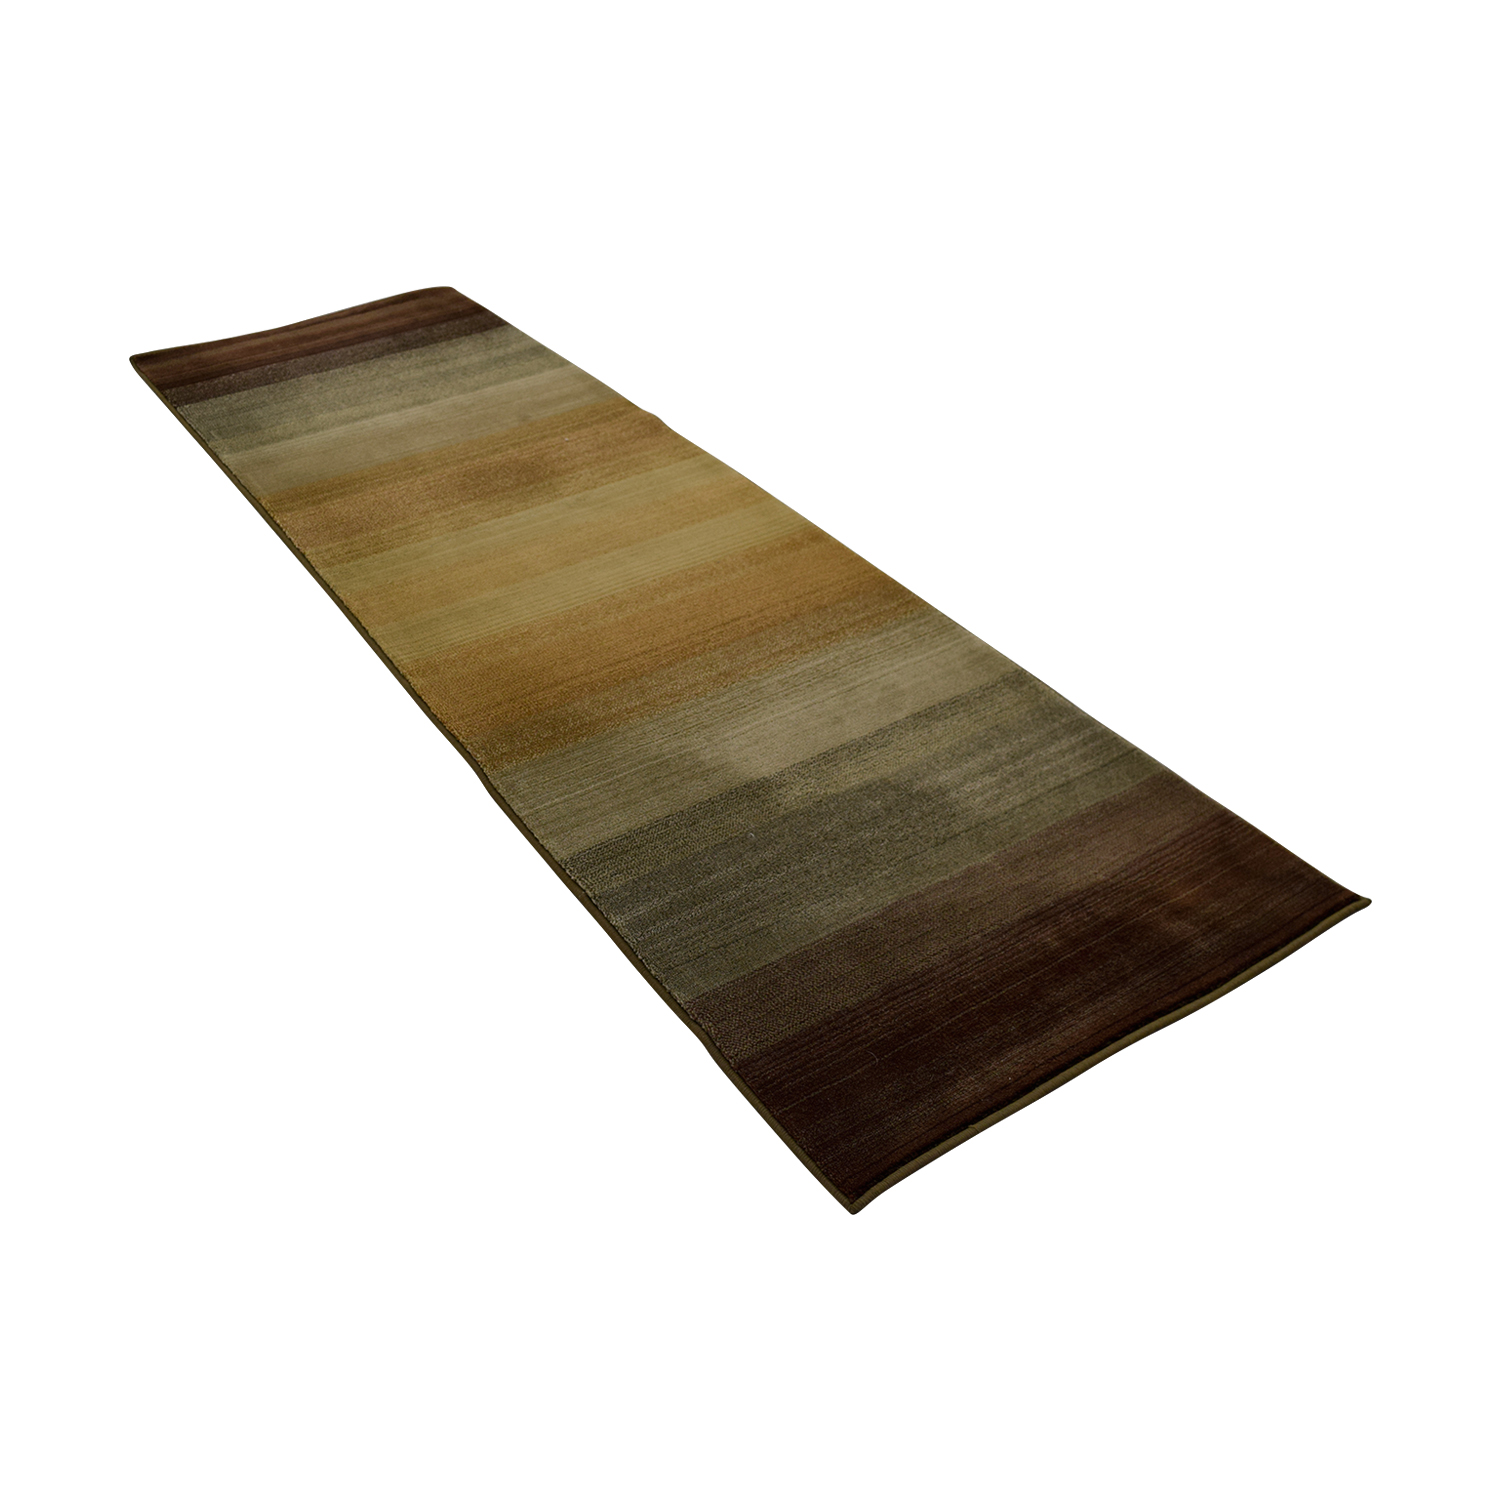 Macys Macys Multi-Colored Brown Runner on sale